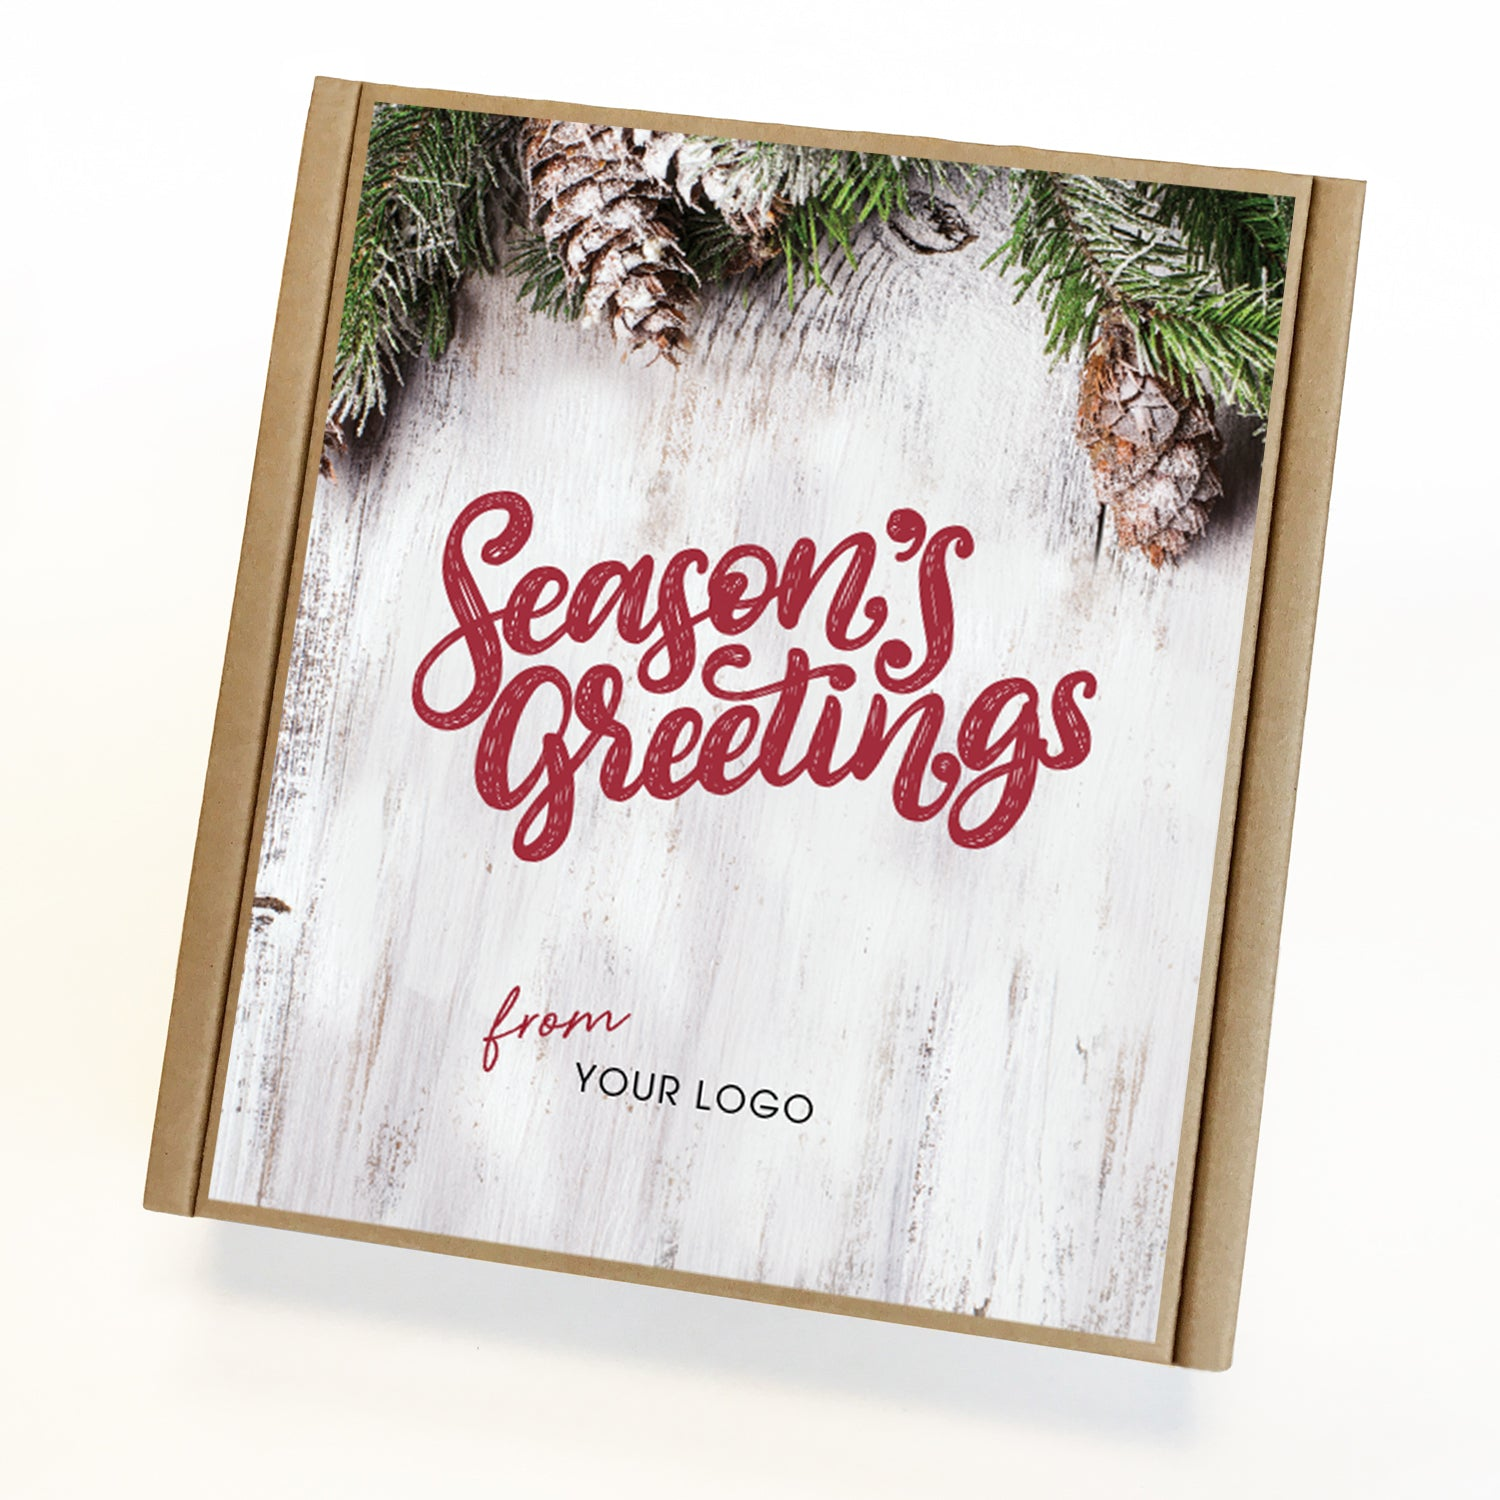 Pineboard Seasons Greetings Eco Custom Caramel Holiday Gift Box